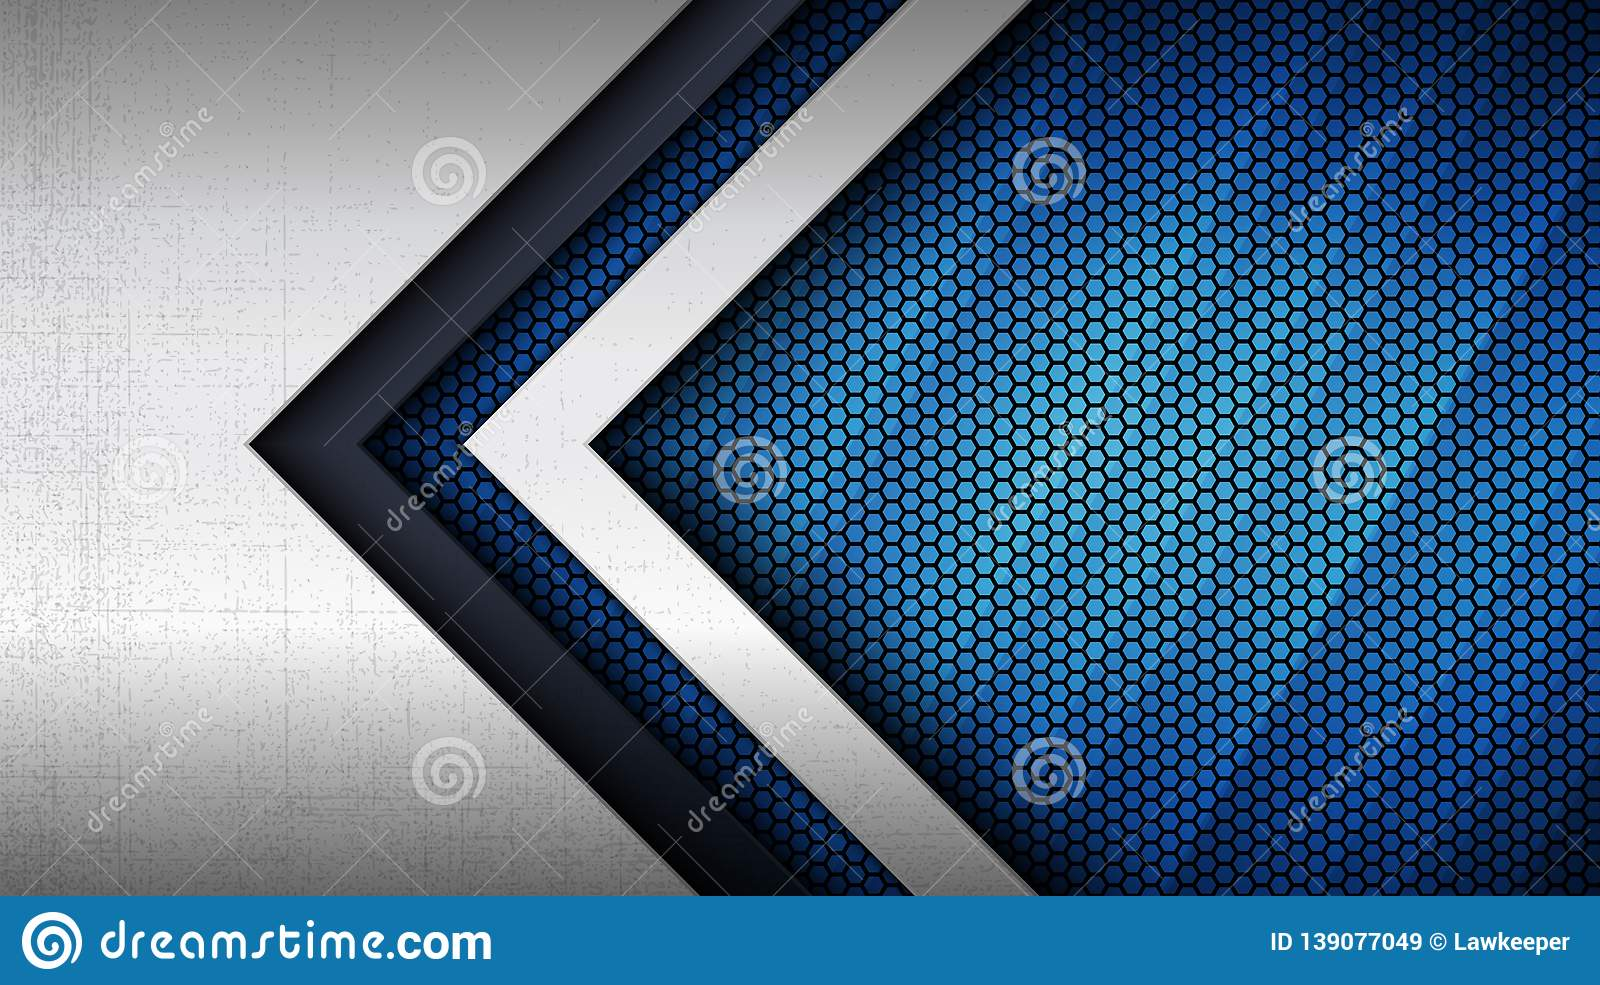 Stainless steel metal panel and hexagonal grid pattern over blue light background